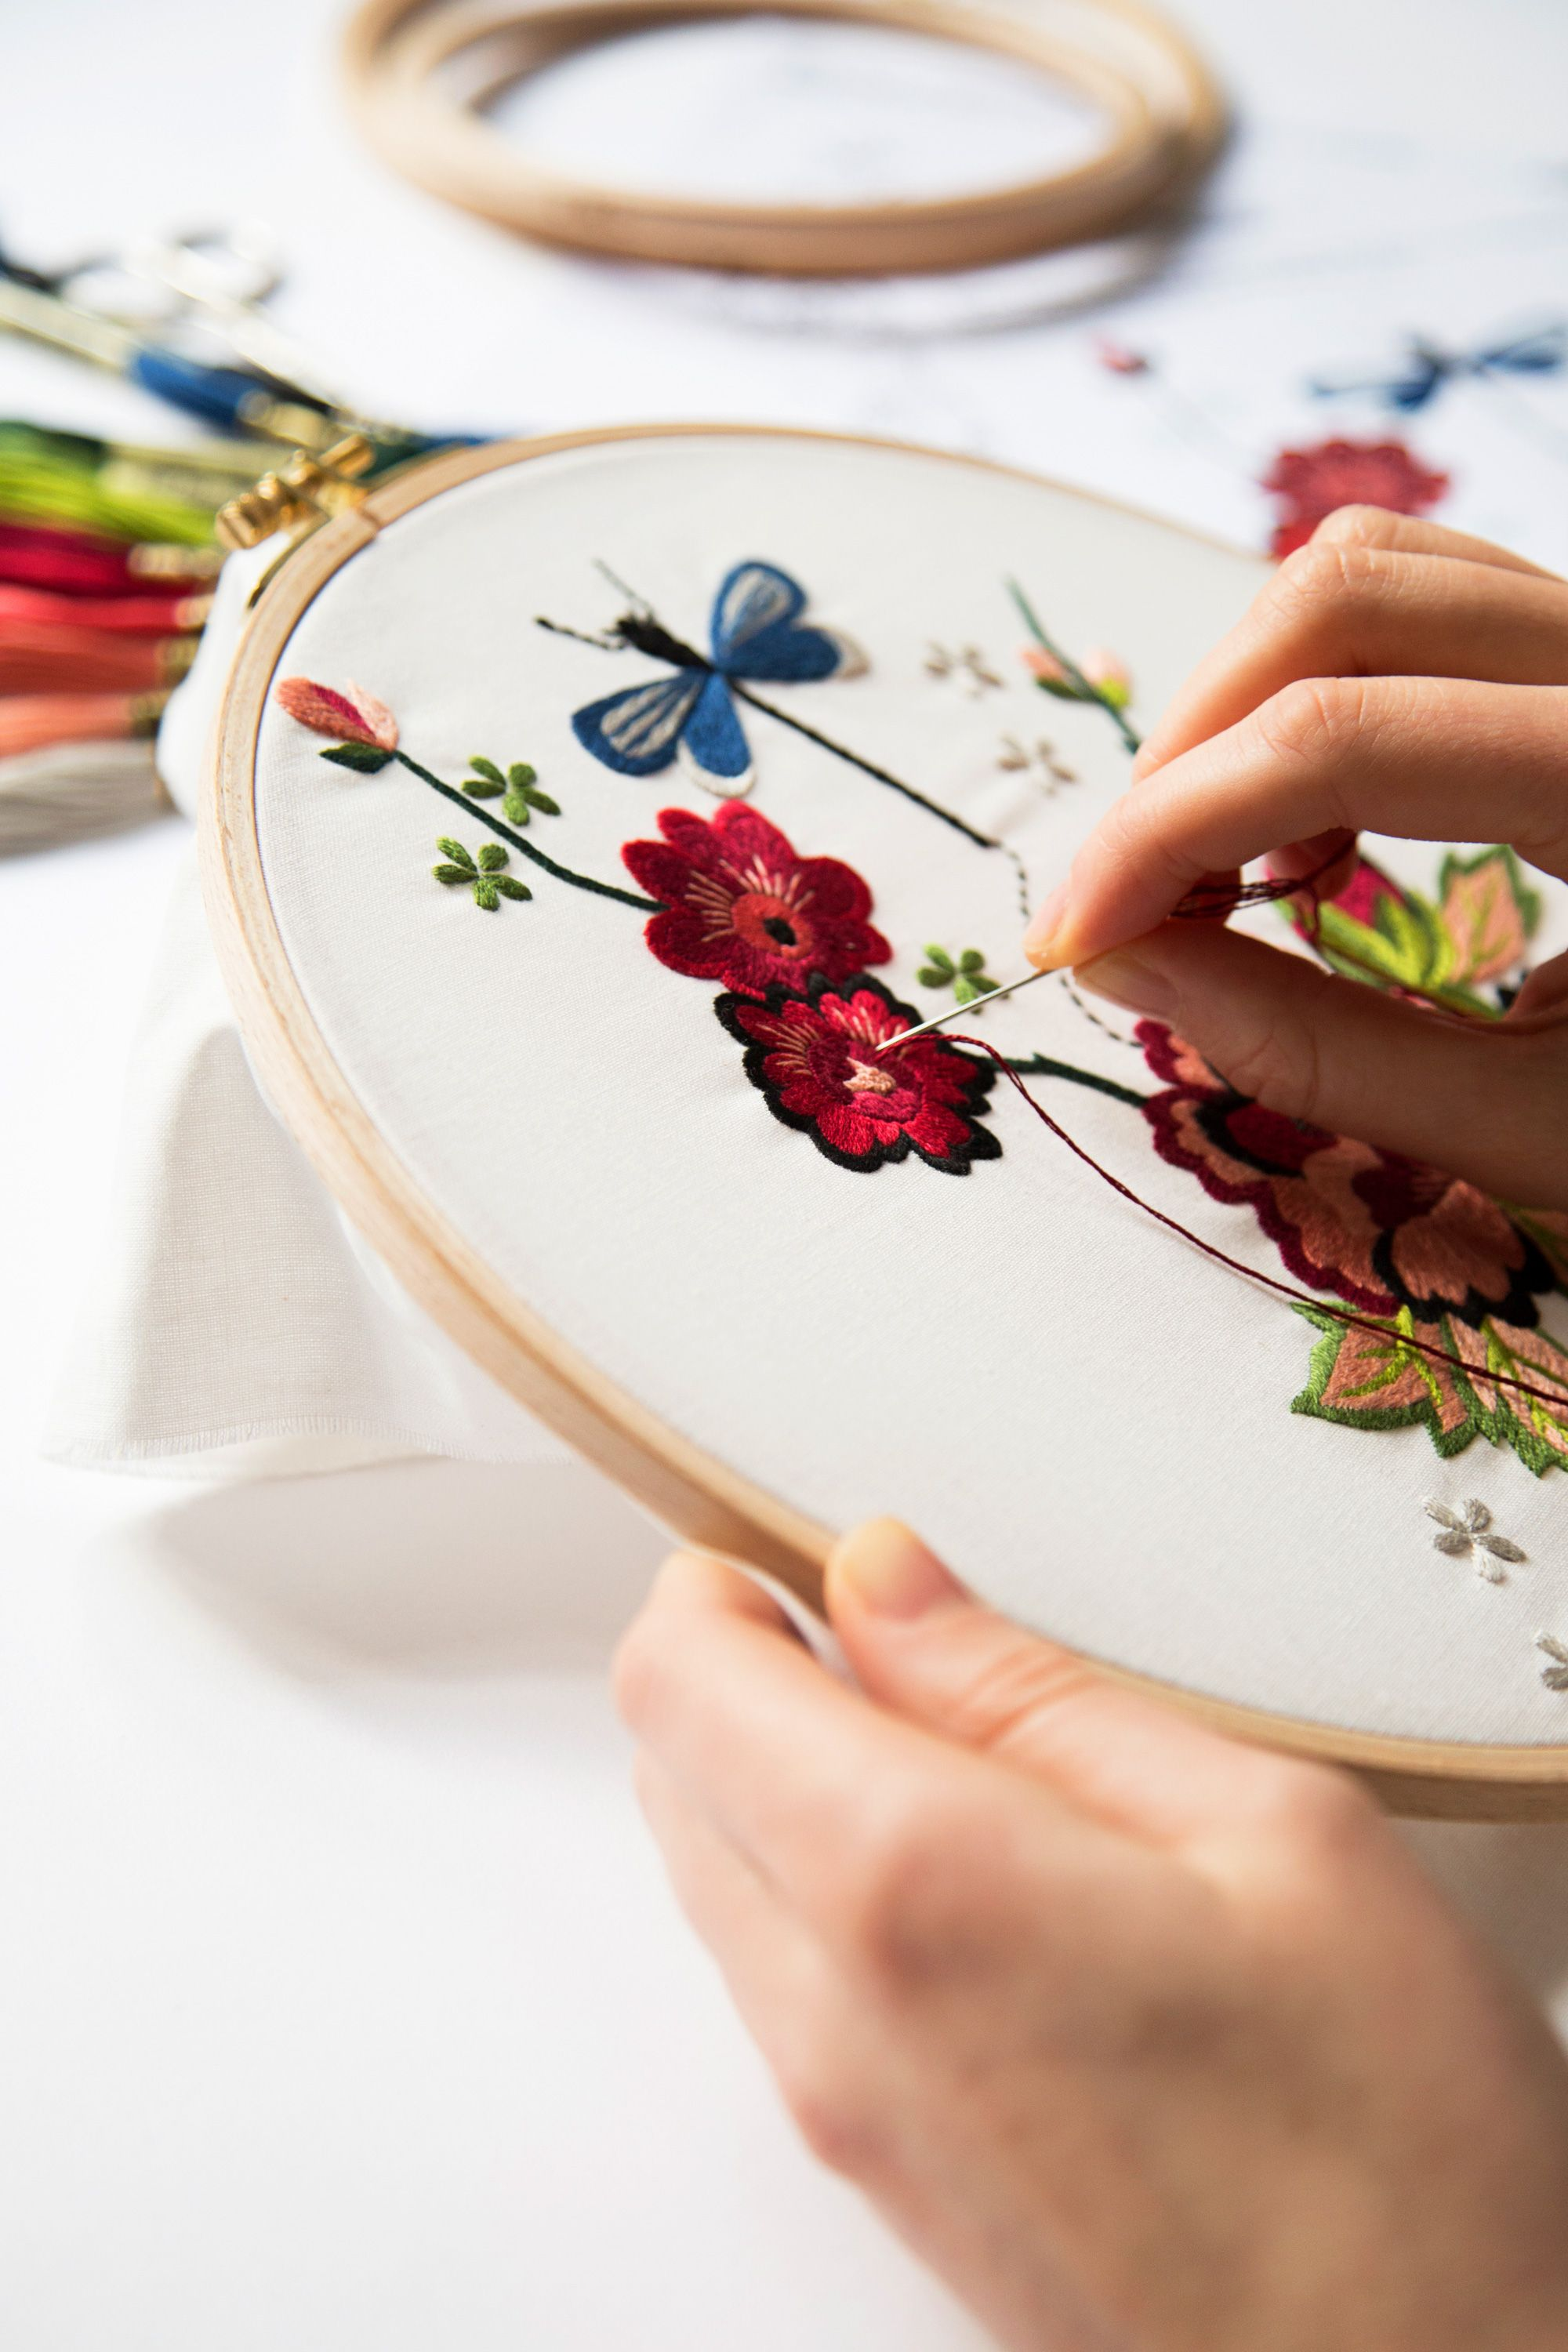 Free embroidery designs cross stitch patterns | DMC COM | sew what